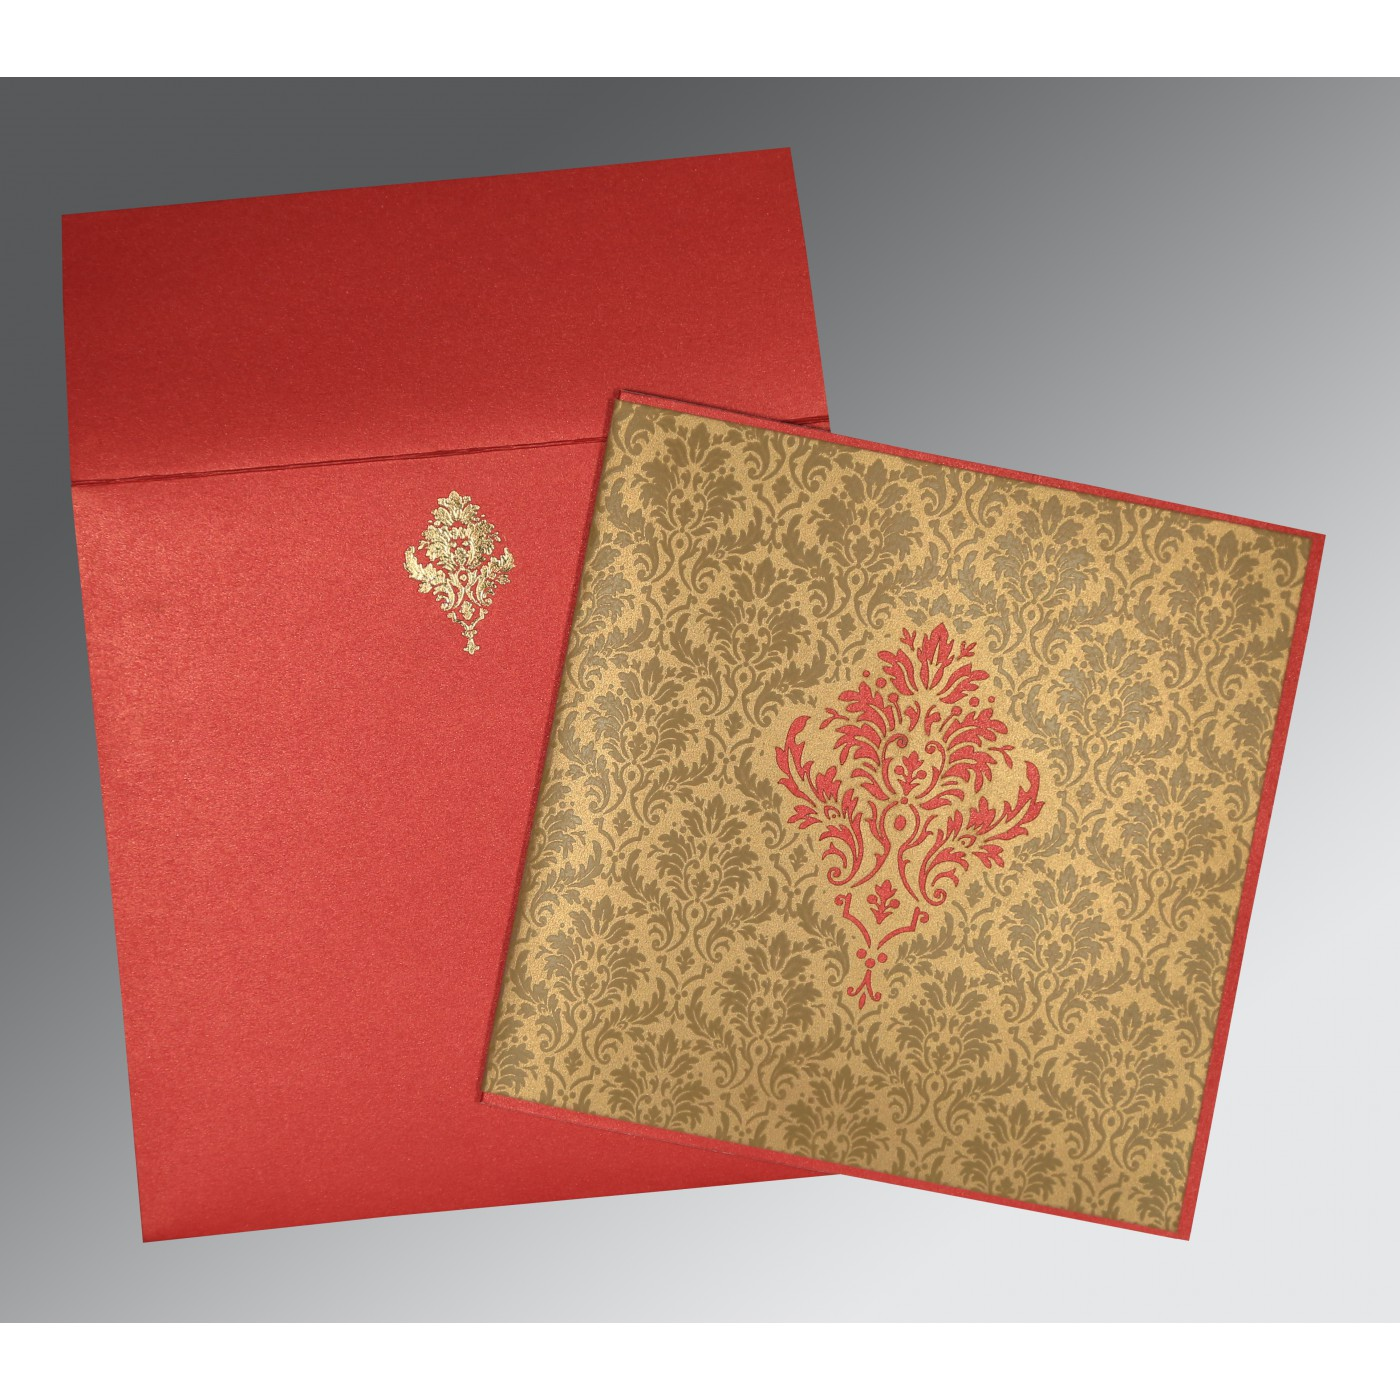 GOLD RED SHIMMERY DAMASK THEMED - LASER CUT WEDDING INVITATION : RU ...